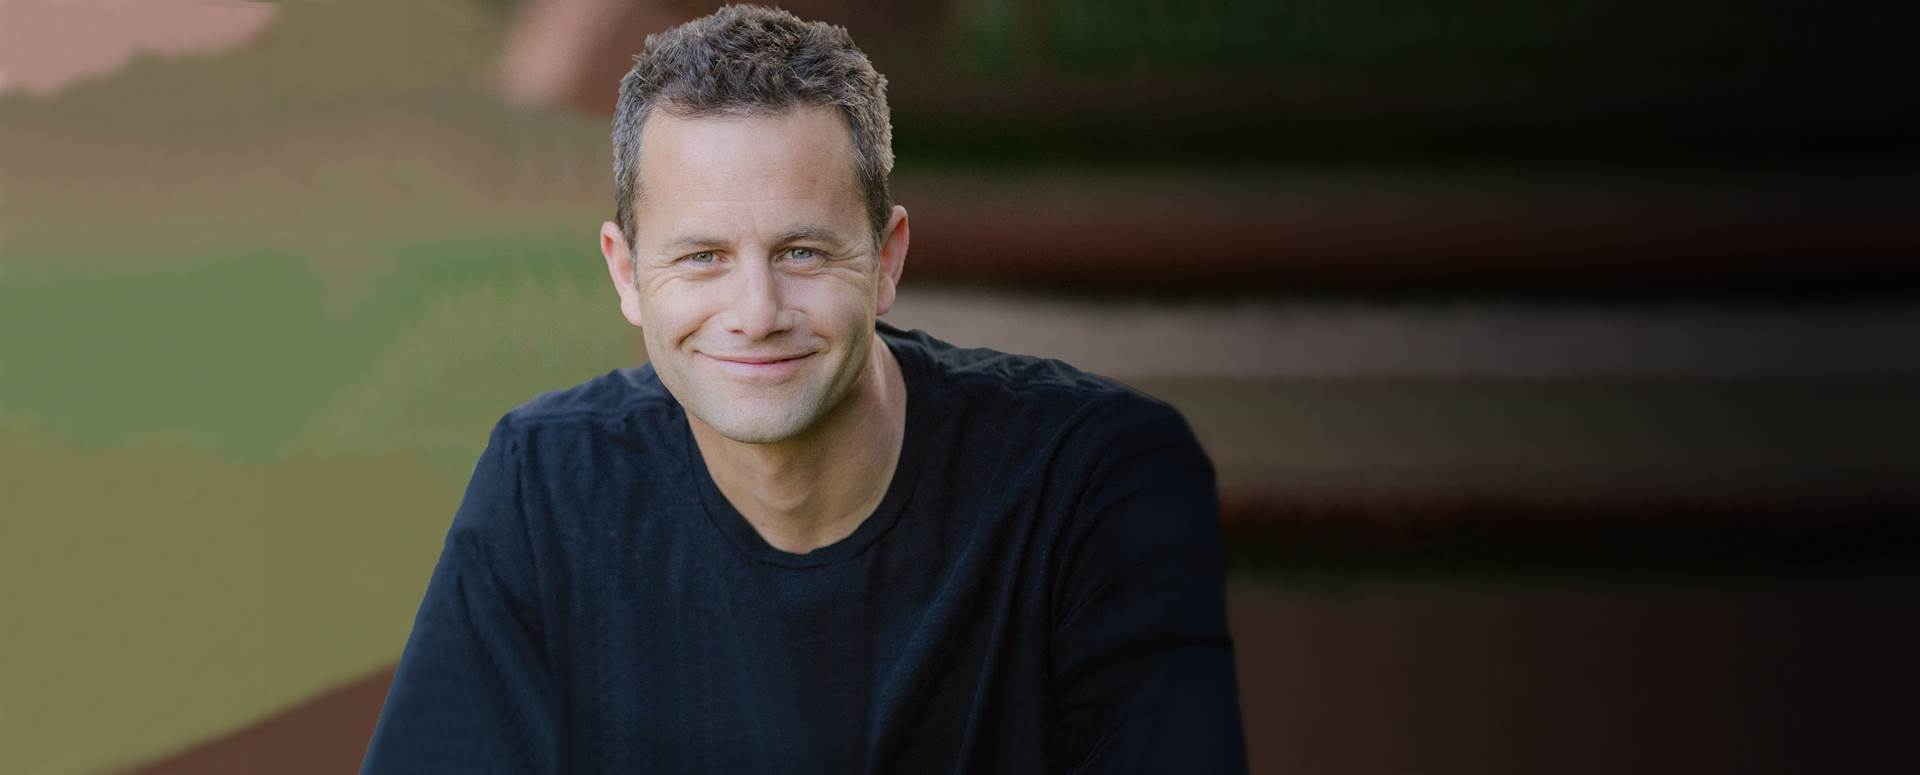 Book Kirk Cameron for Speaking, Events and Appearances | APB Speakers